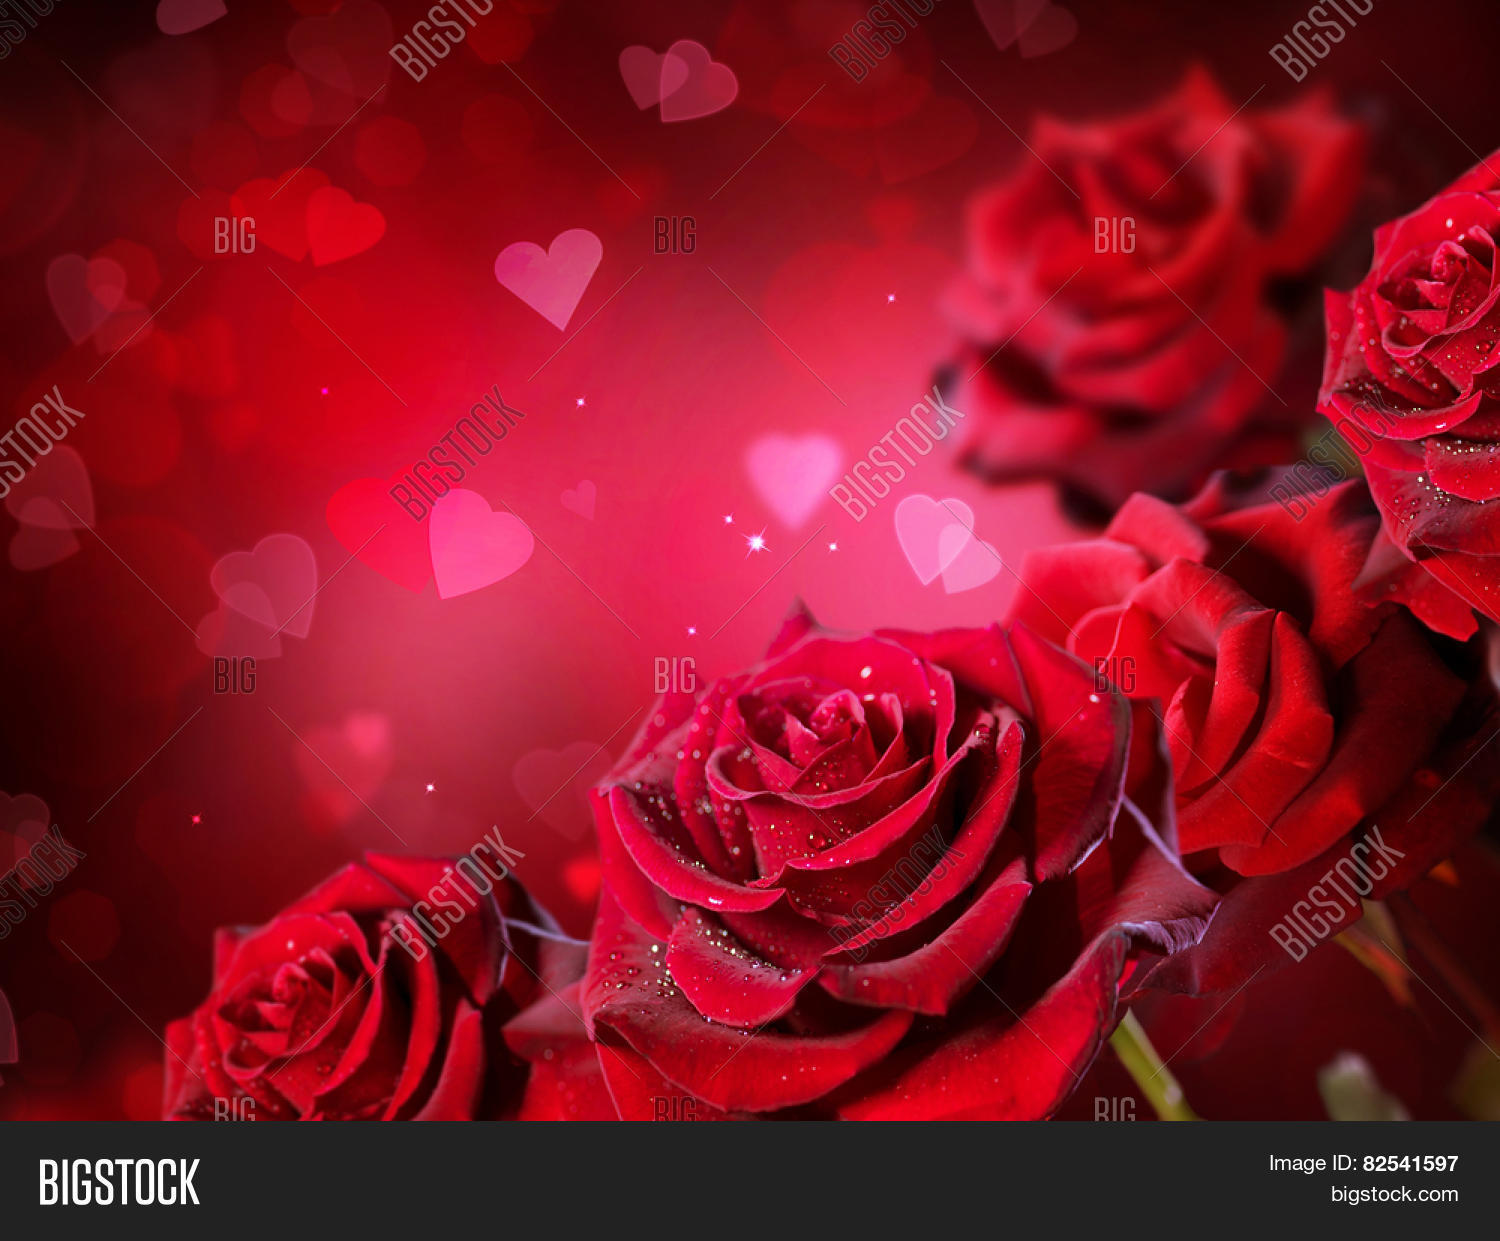 Roses hearts background valentine image photo bigstock roses and hearts background valentine or wedding card design beautiful red roses bouquet over izmirmasajfo Choice Image